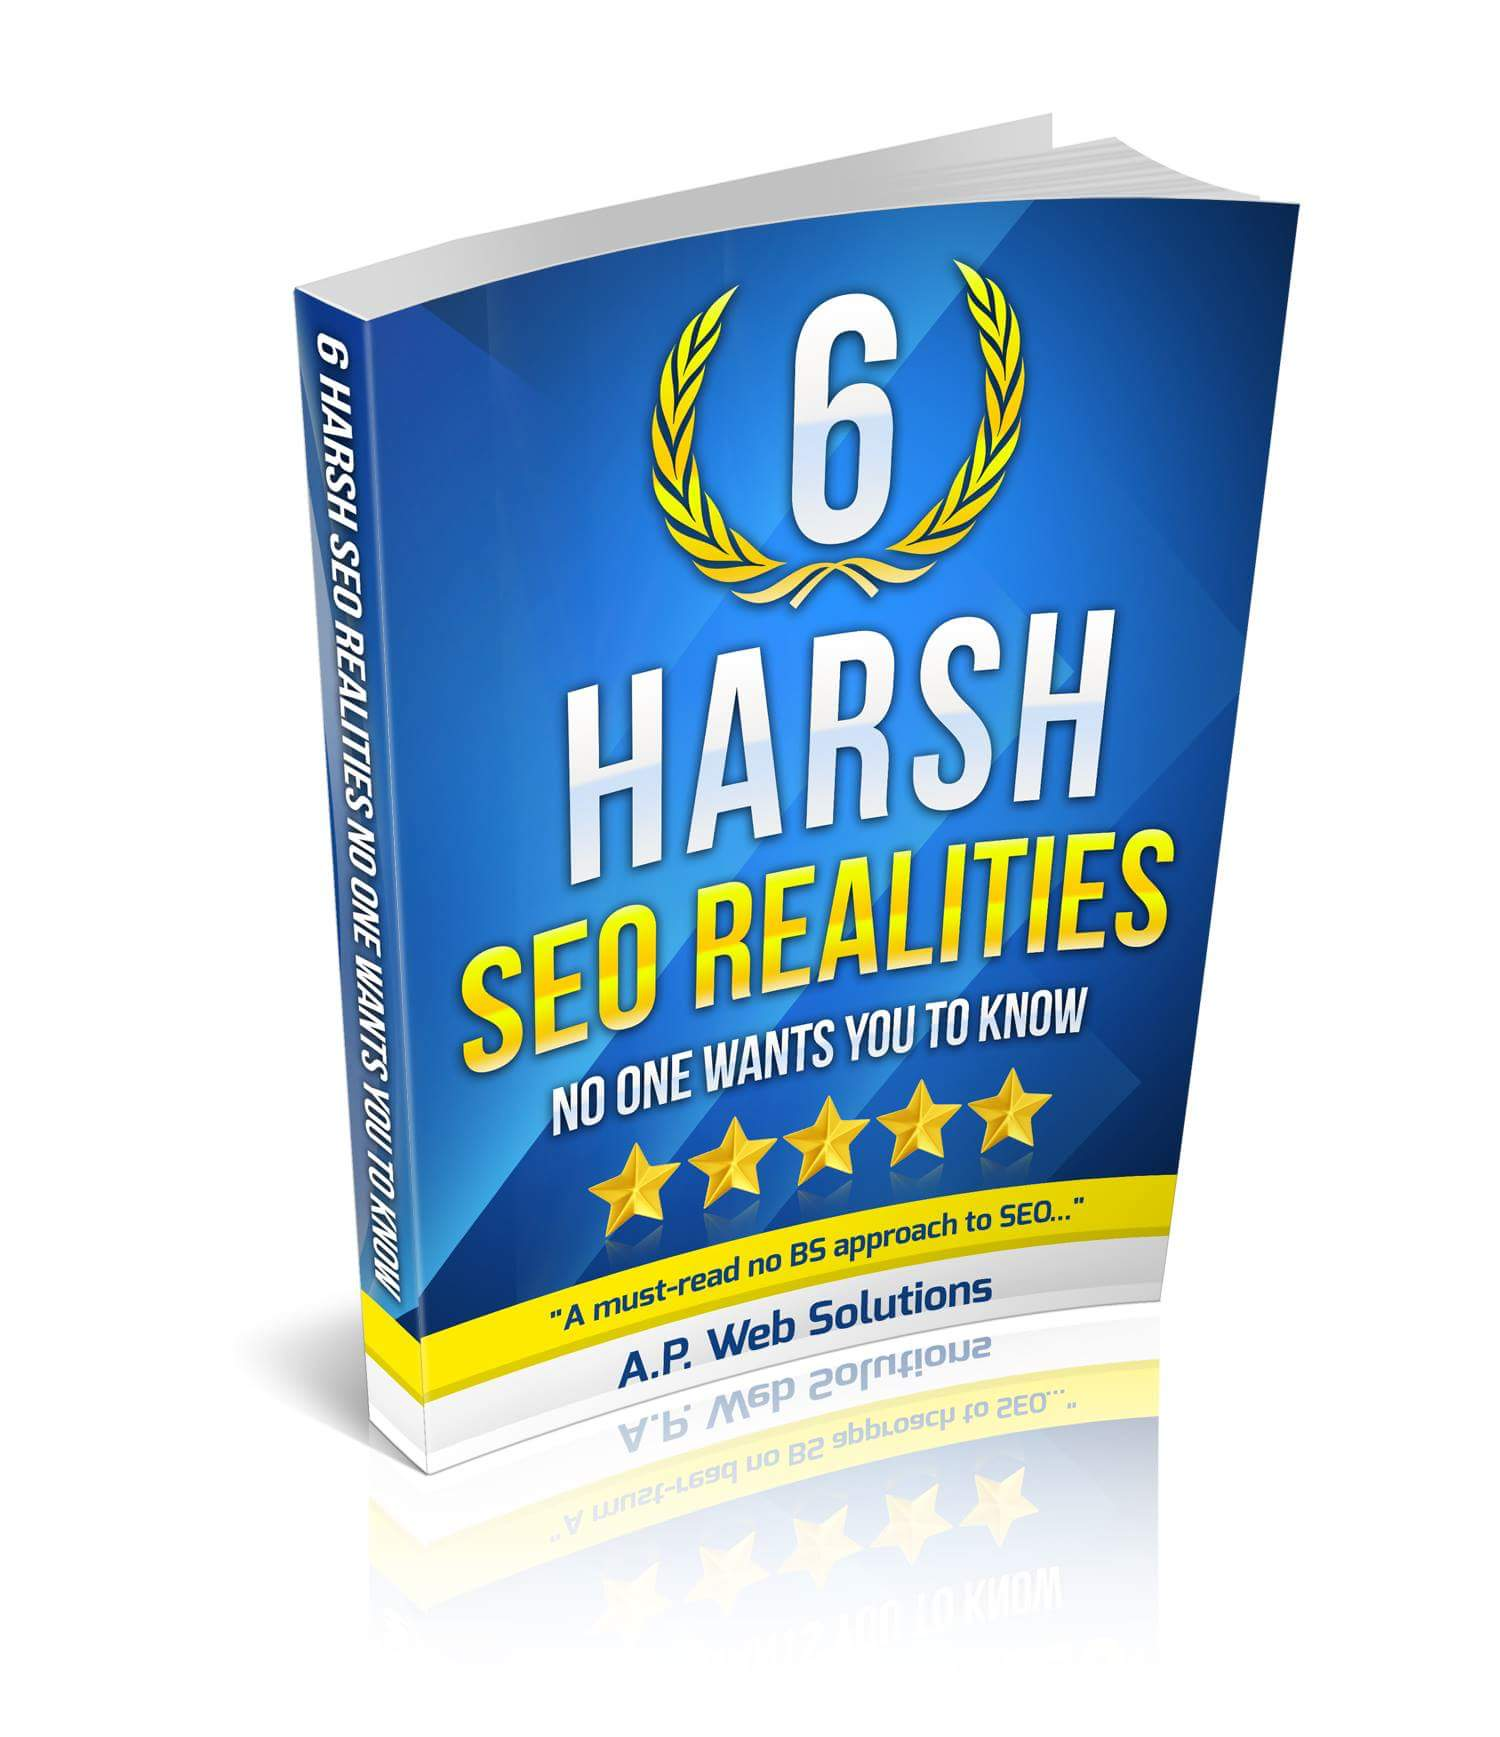 6 Harsh realities of SEO ebook by A.P. Web Solutions